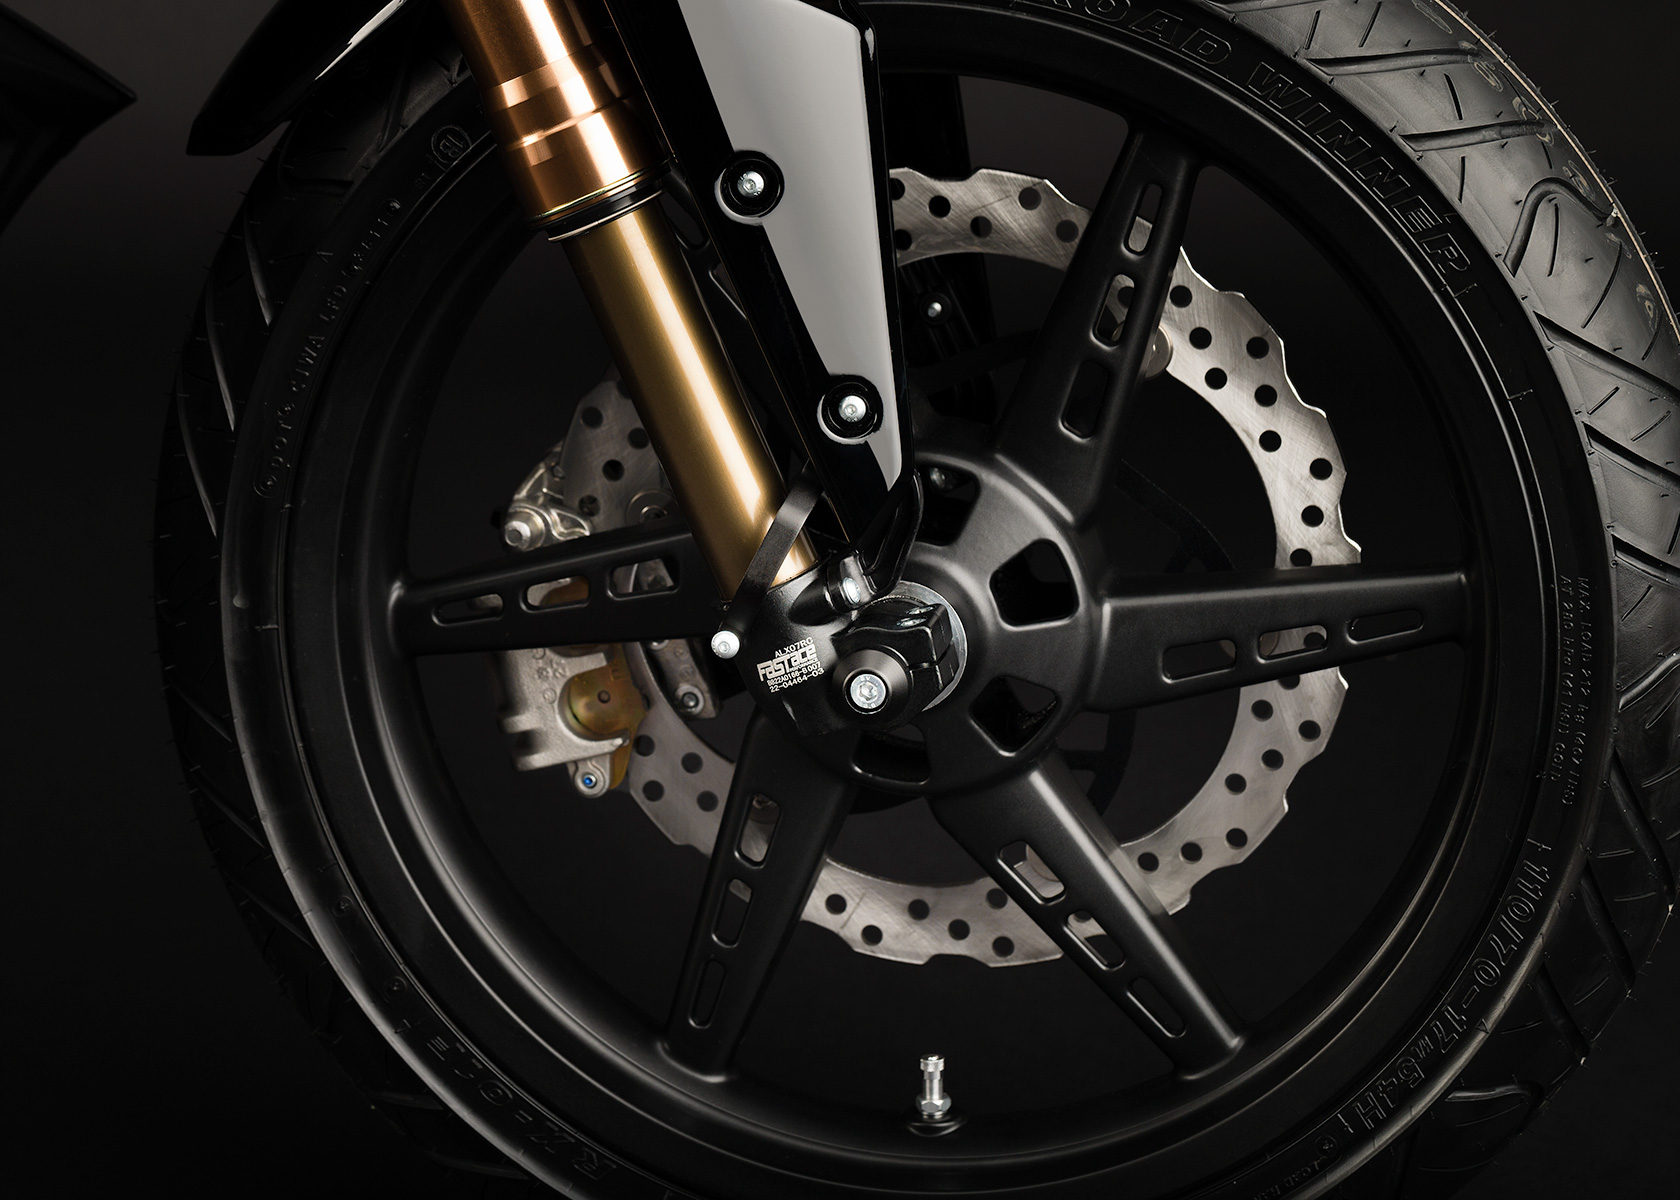 2013 Zero S Electric Motorcycle: Wheel